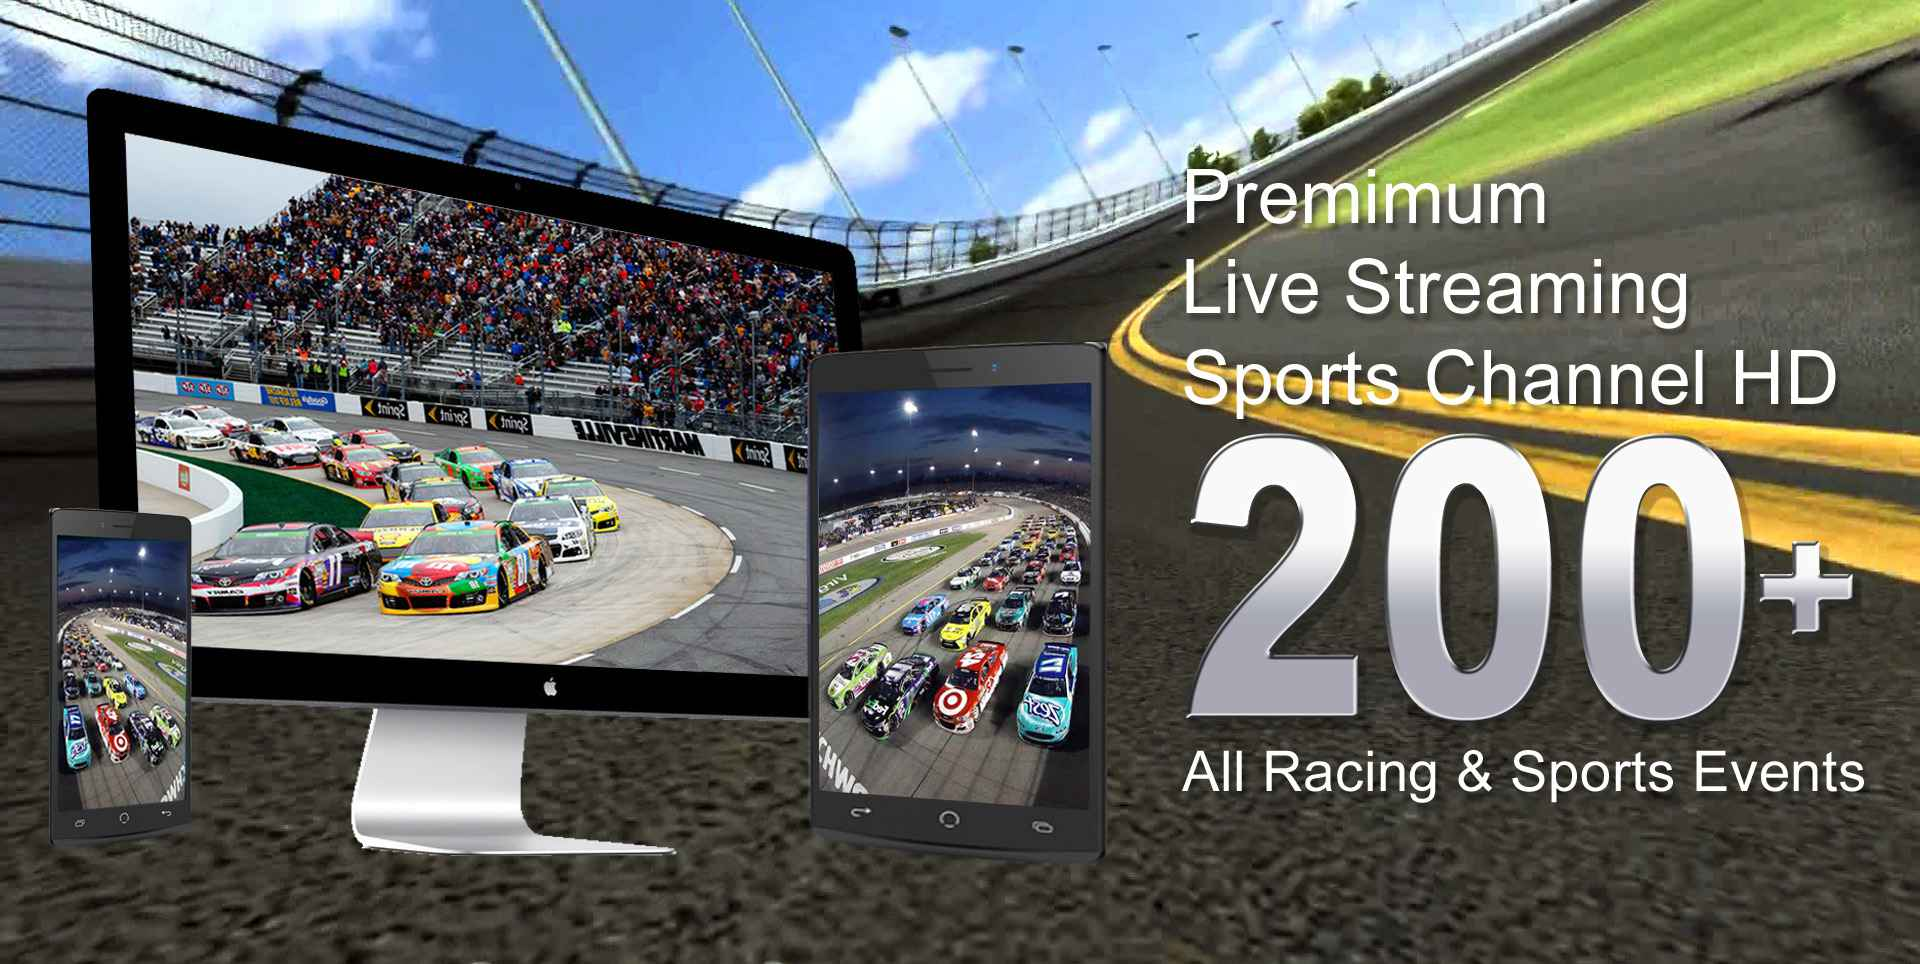 Nascar Kentucky Race 2015 Online